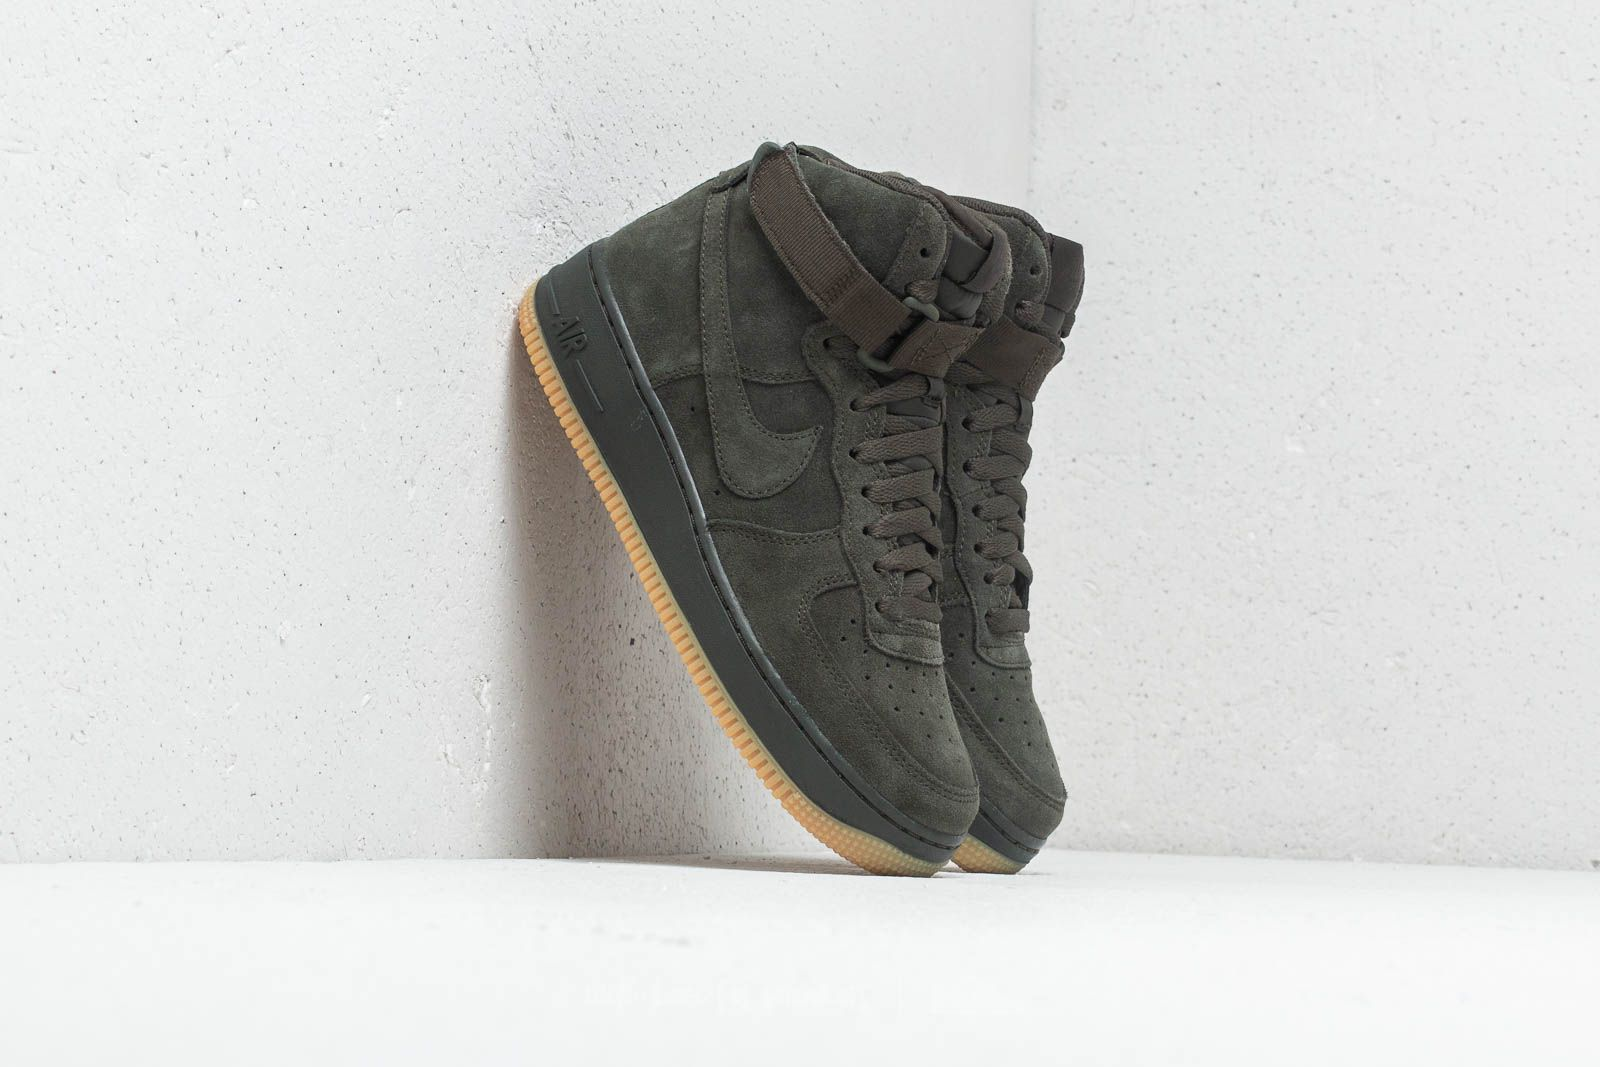 64299369a7faf4 Nike Air Force 1 High LV8 (GS) Sequoia at a great price 109 €